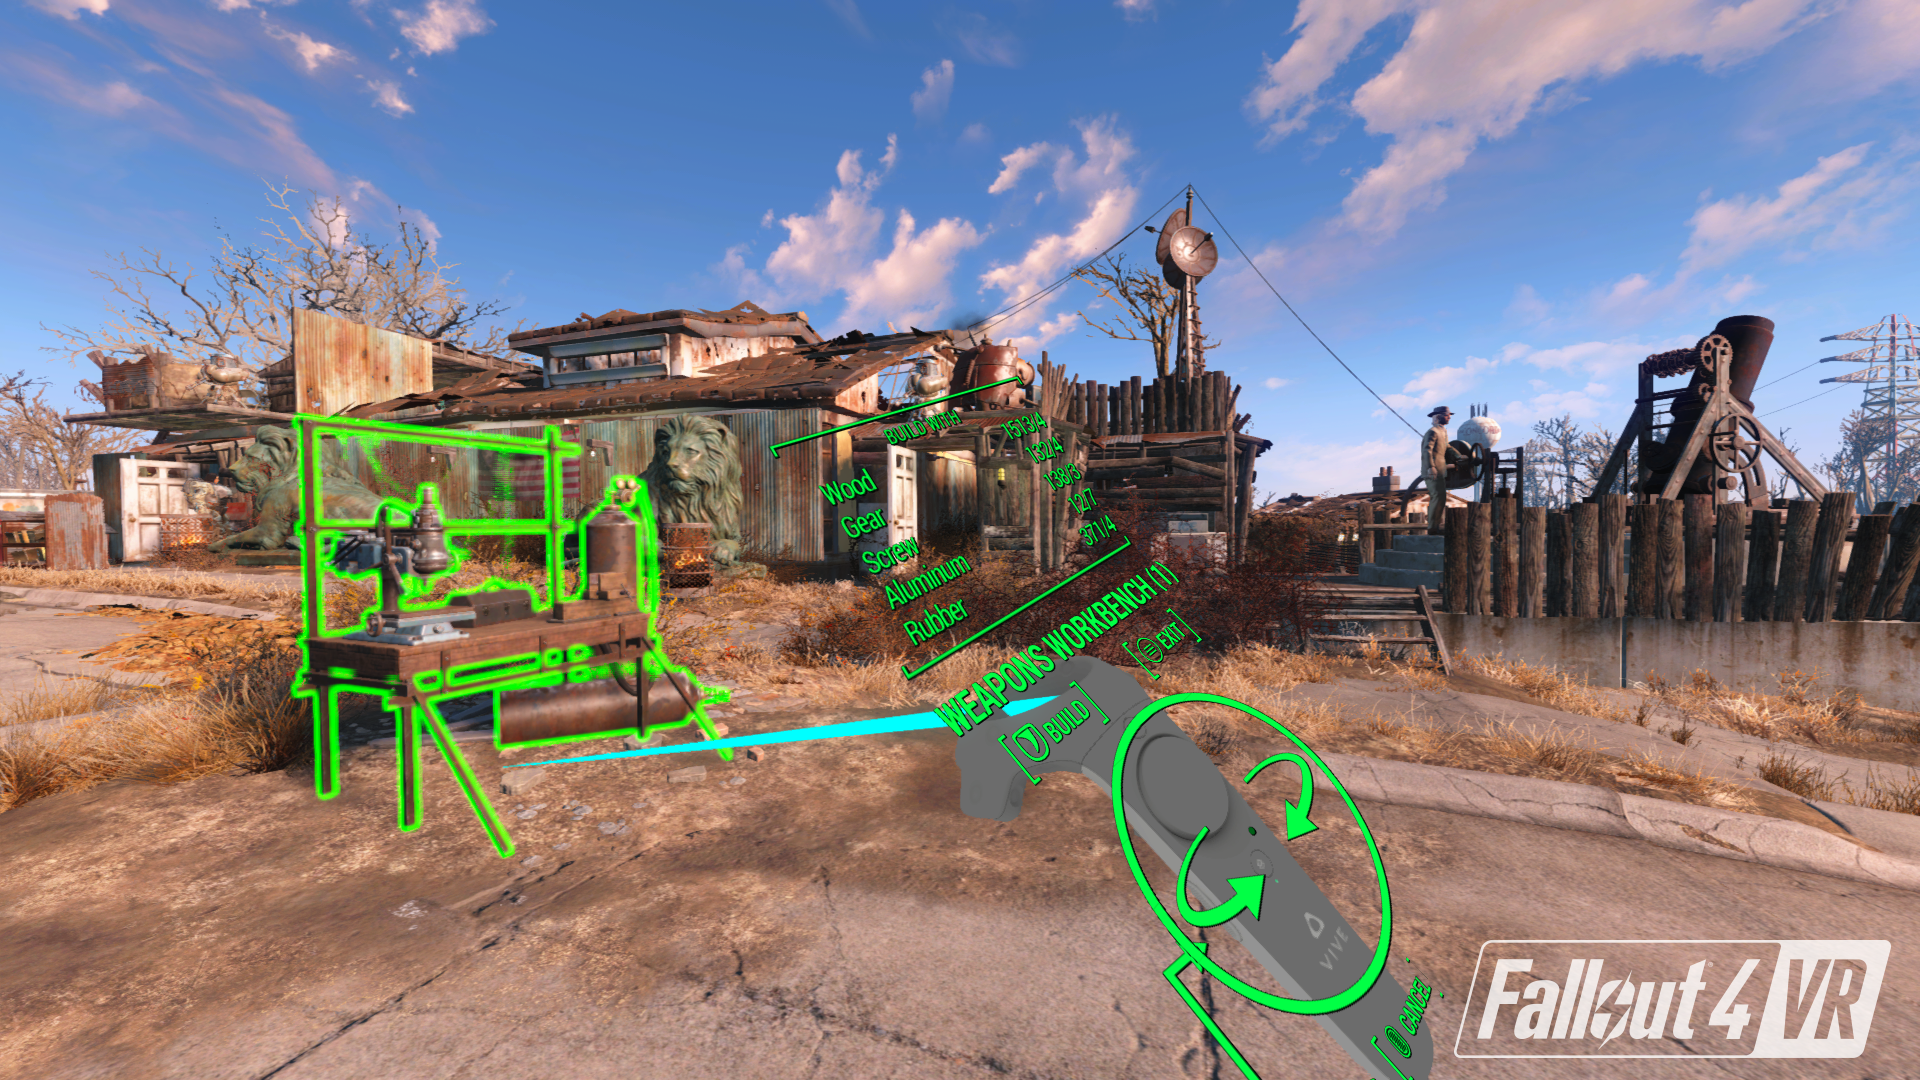 fallout_4_vr (1)